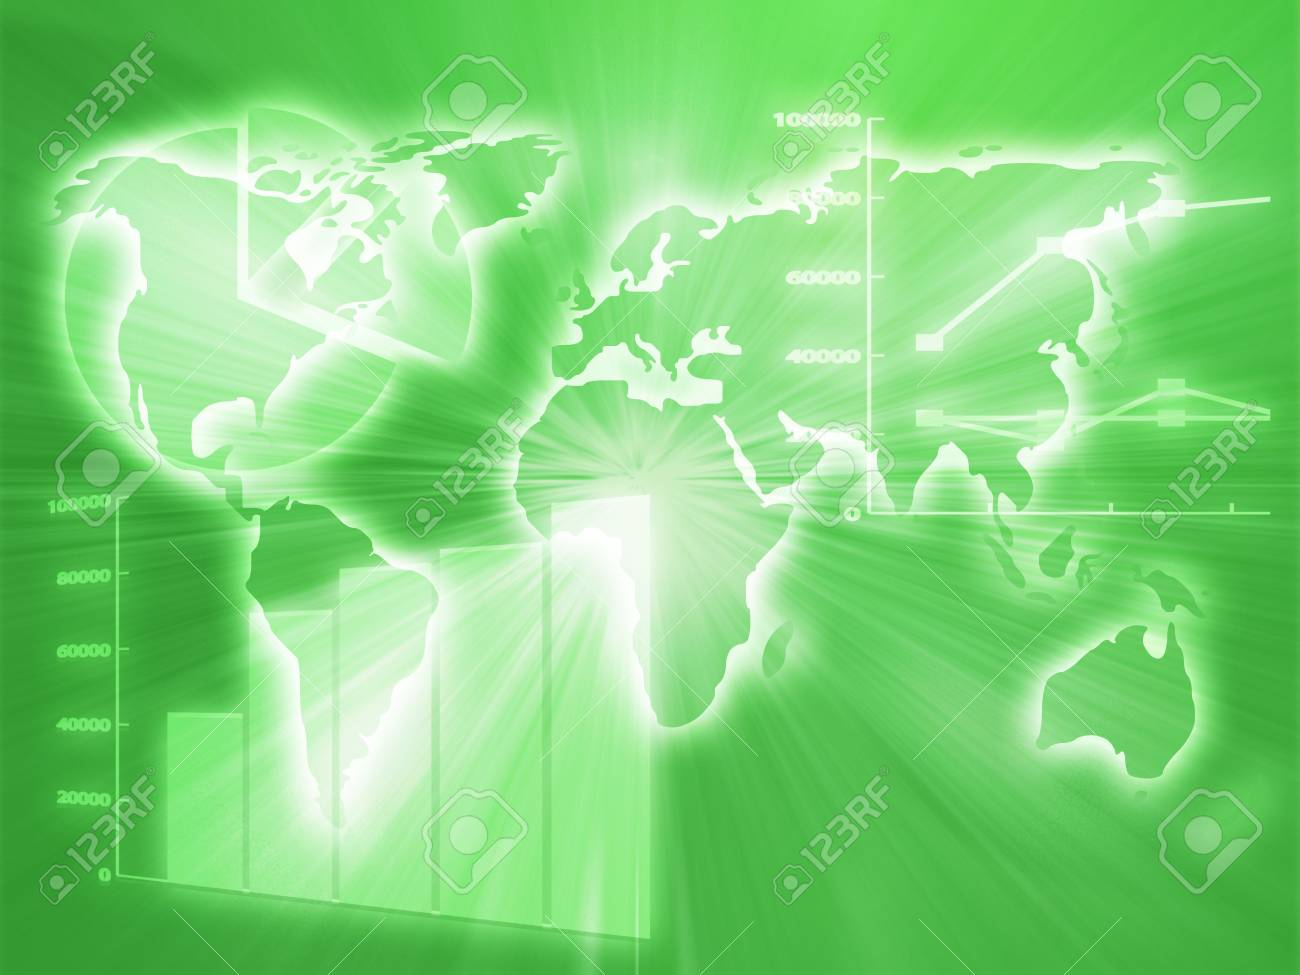 Illustration of Spreadsheet data and business charts in glowing wireframe style Stock Illustration - 3710325